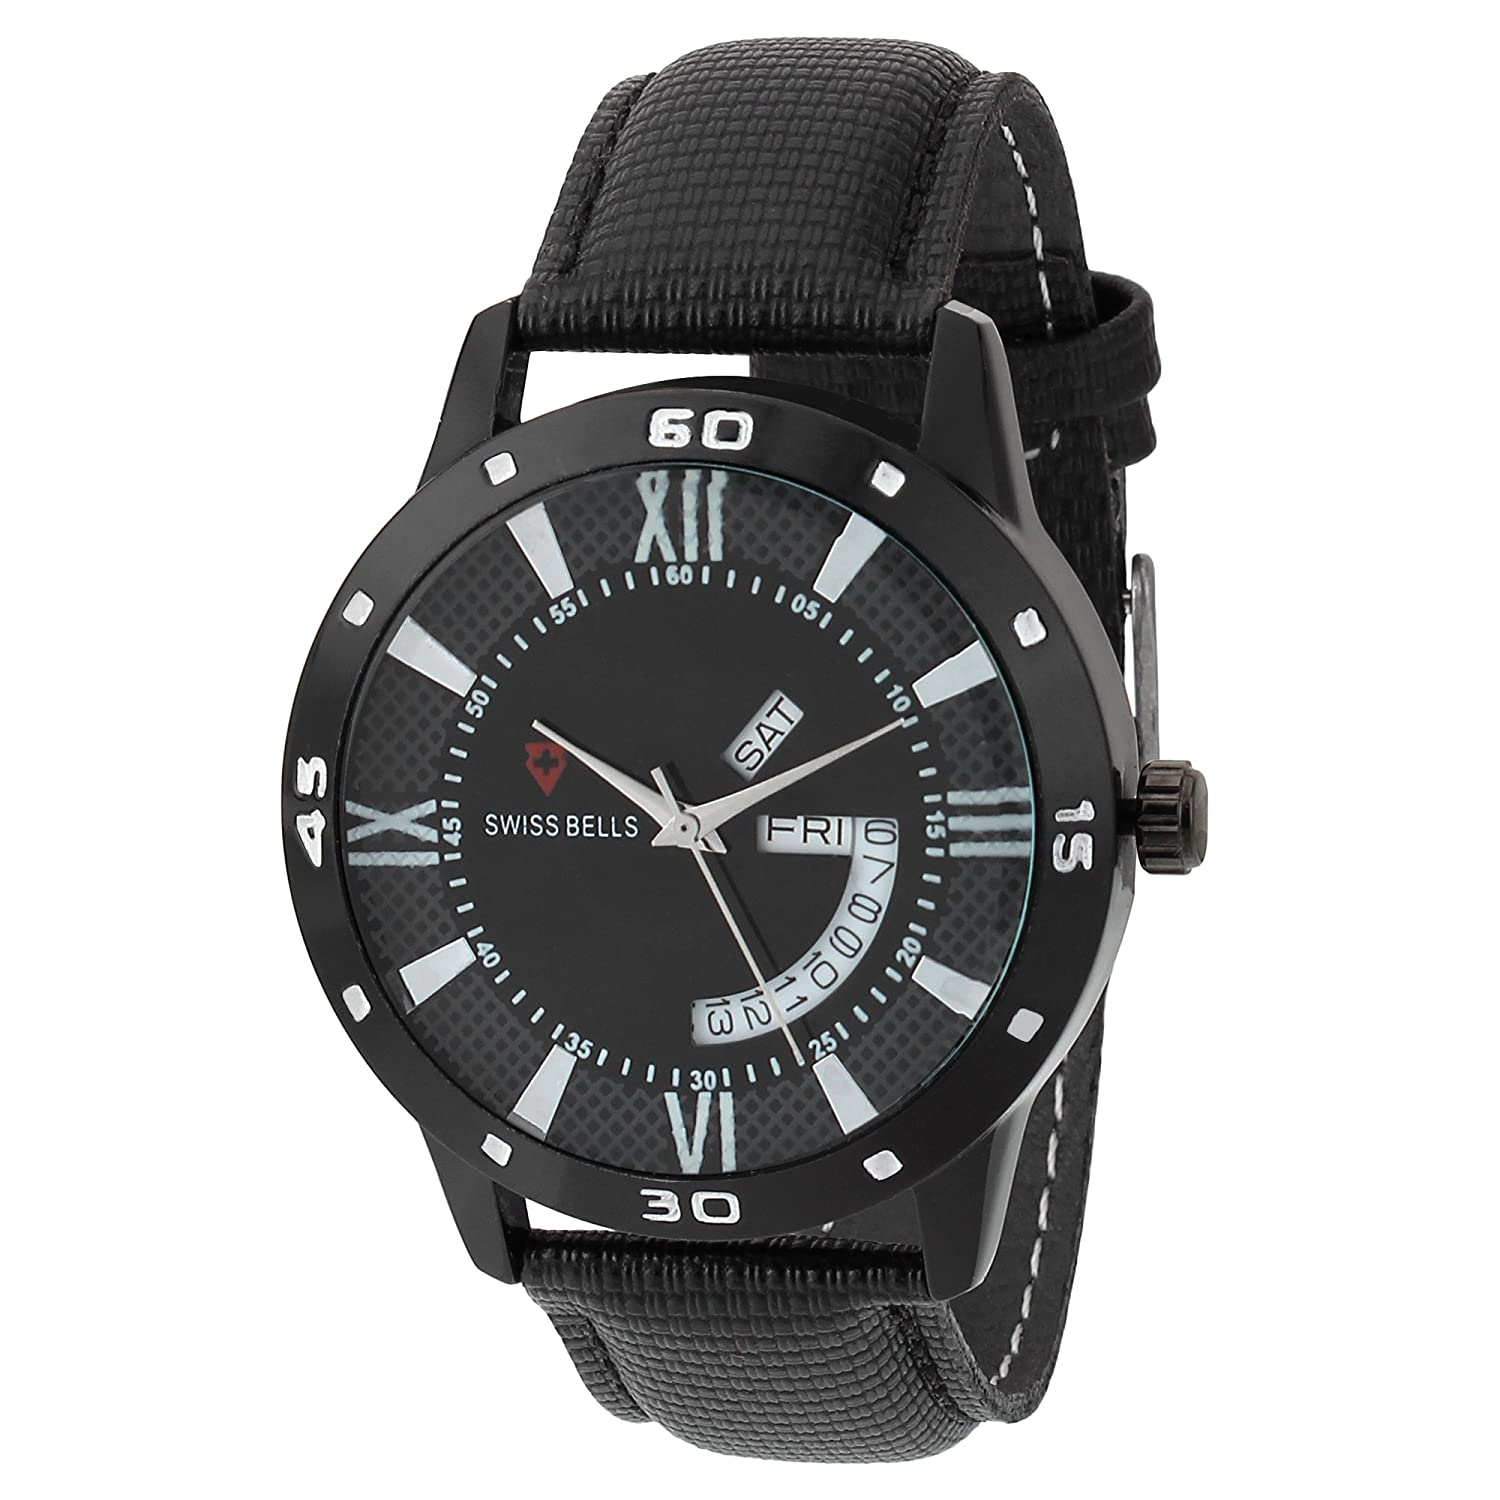 Svviss Bells Original Black Dial Black Genuine Leather Strap Day and Date Chronograph Men's Wrist Watch - TA-965